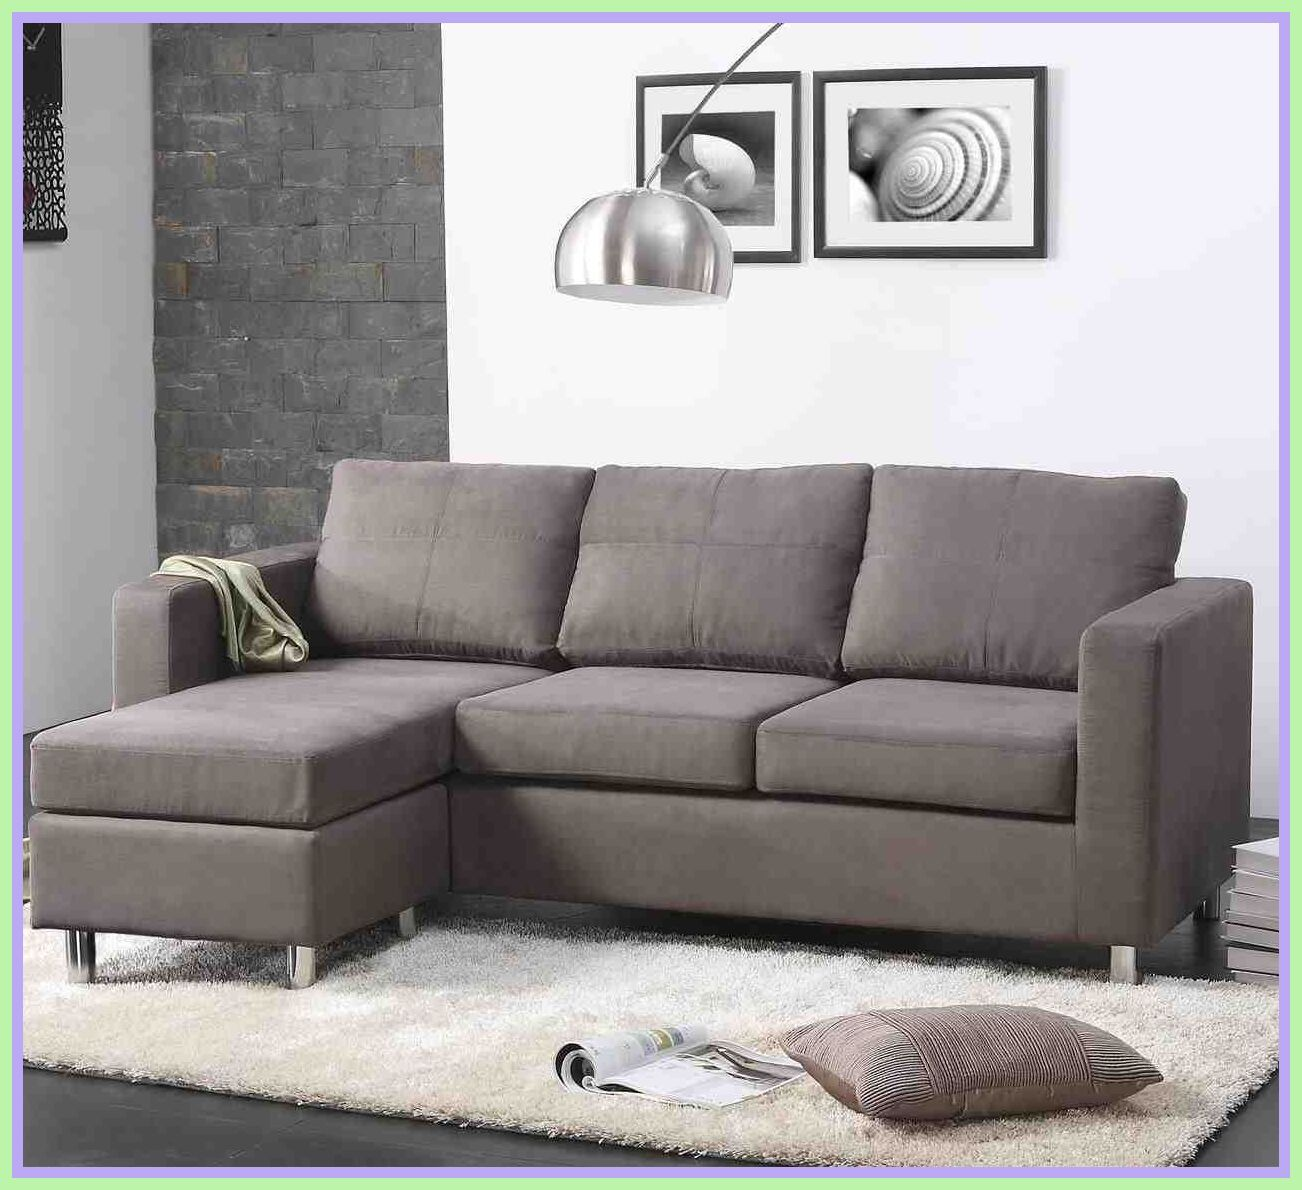 95 Reference Of Small Sofa Bed L Shaped In 2020 Small L Shaped Sofa L Shaped Sofa Small Sofa Designs